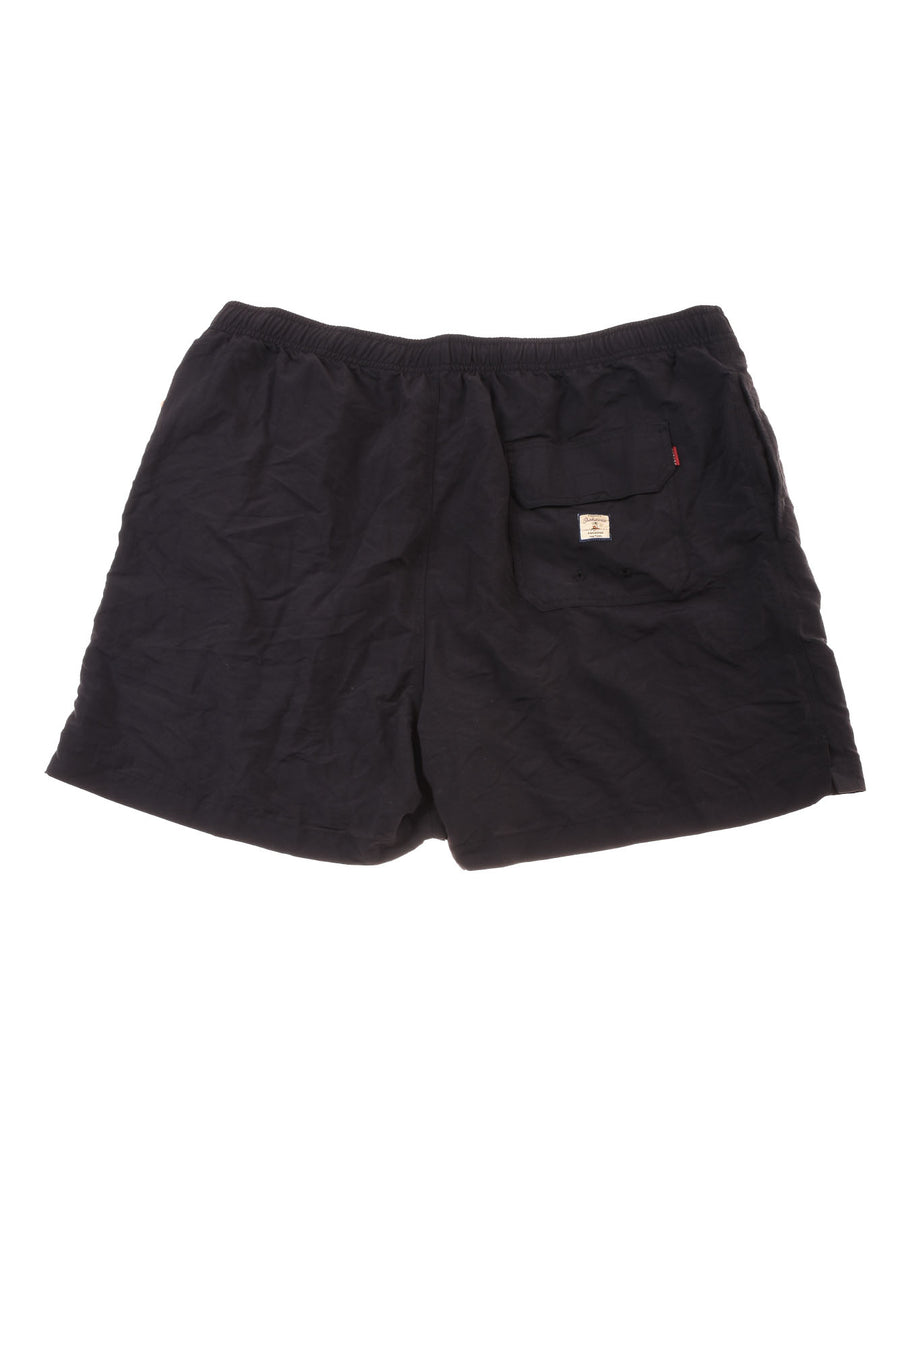 Men's Swim Shorts By Tommy Bahama